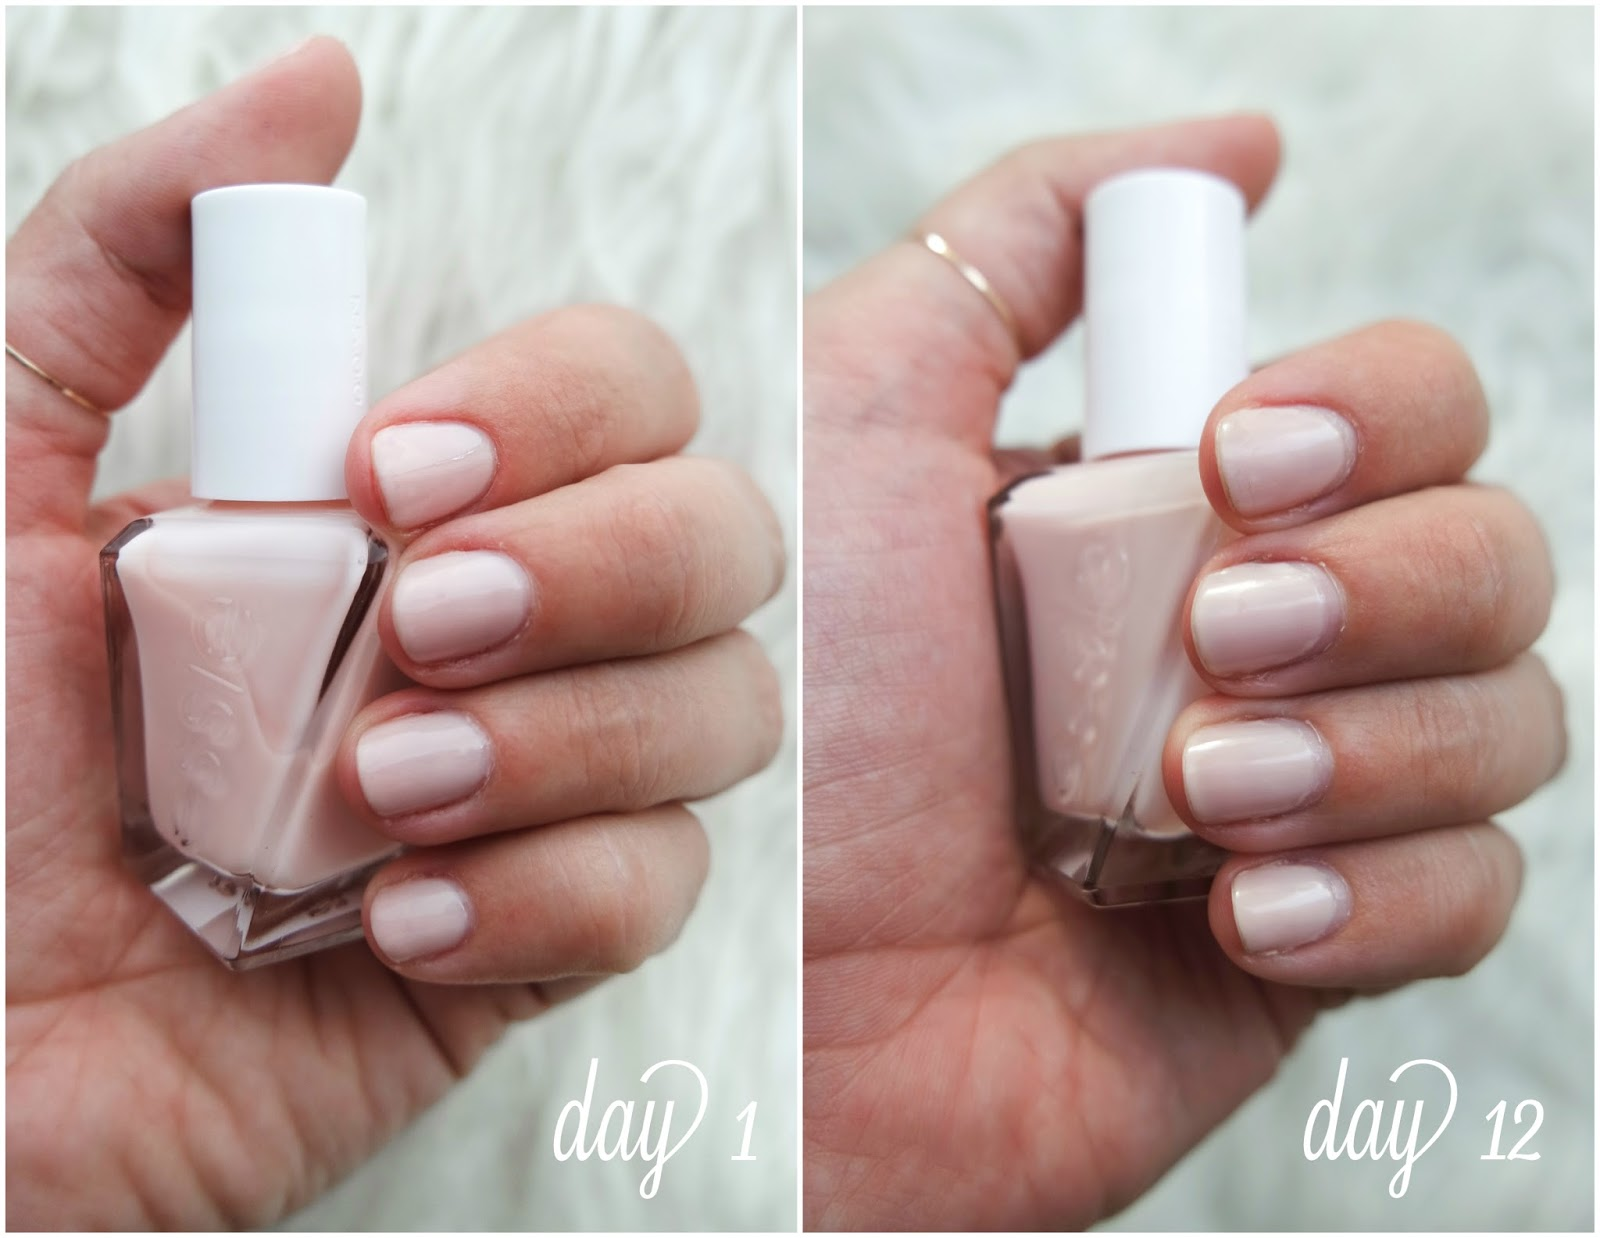 essie fairy tailor; essie gel couture line before and after; essie gel couture review